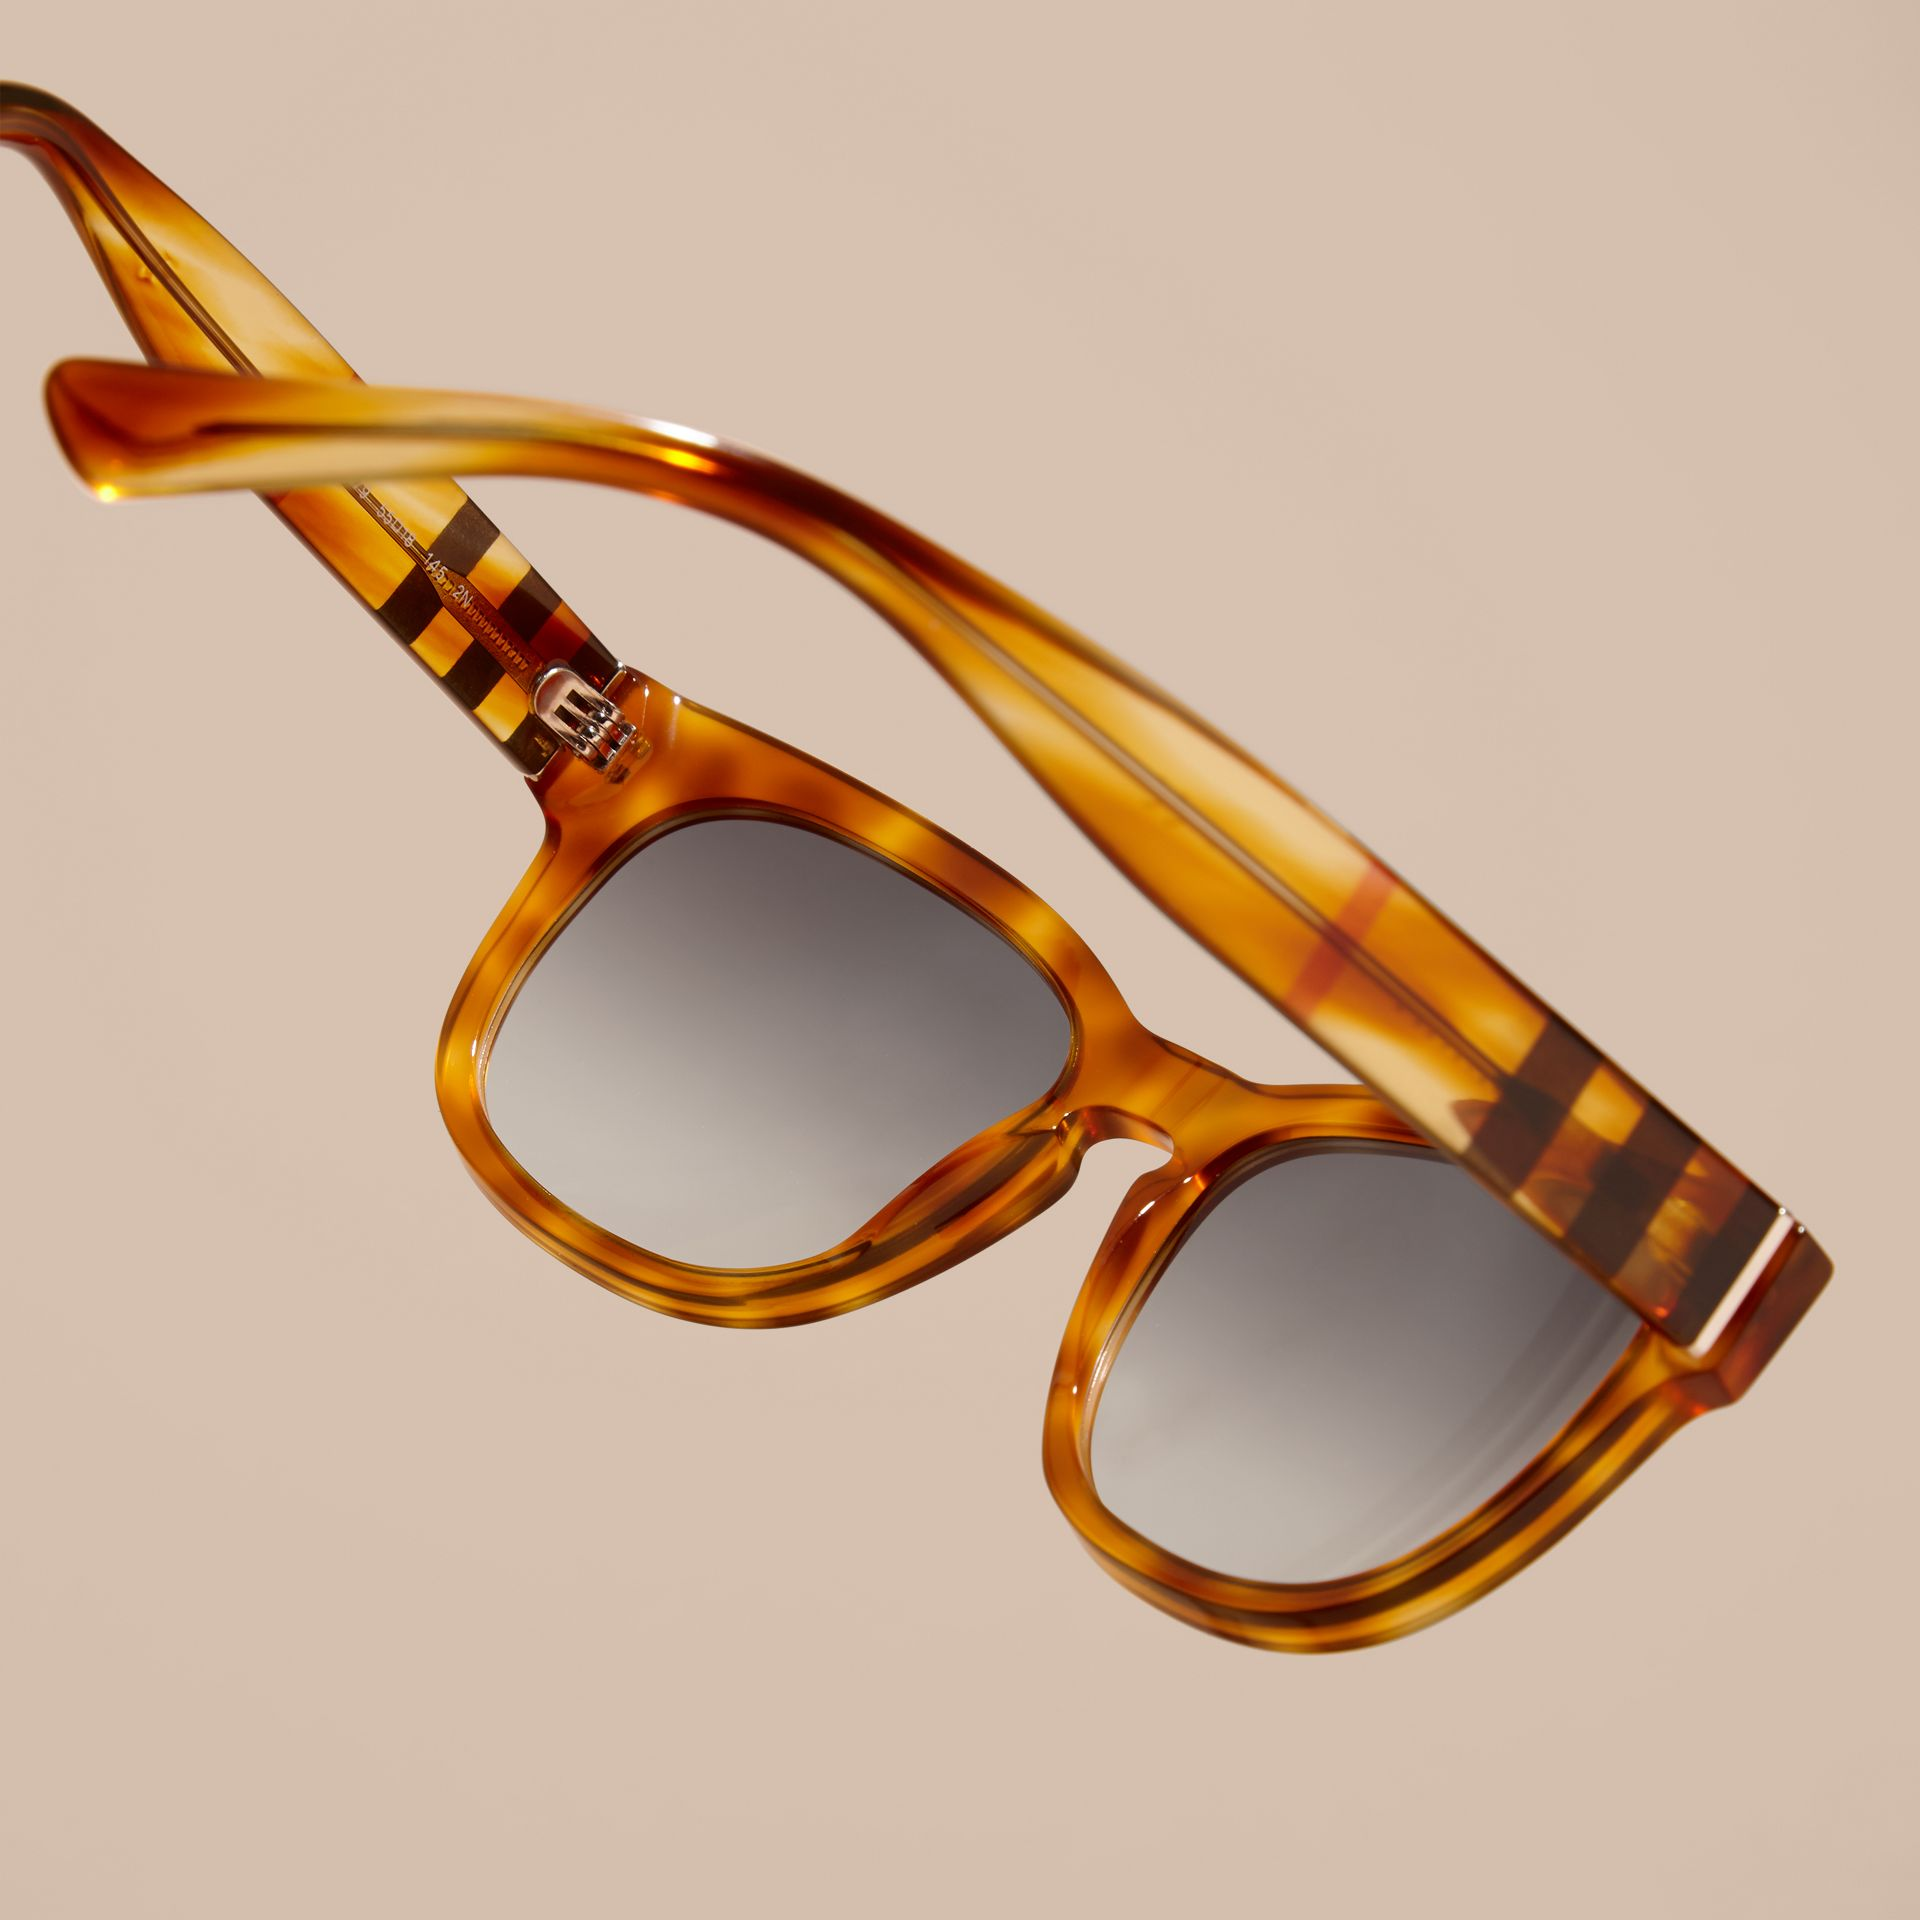 Light russet brown Check Detail Square Frame Sunglasses Light Russet Brown - gallery image 4